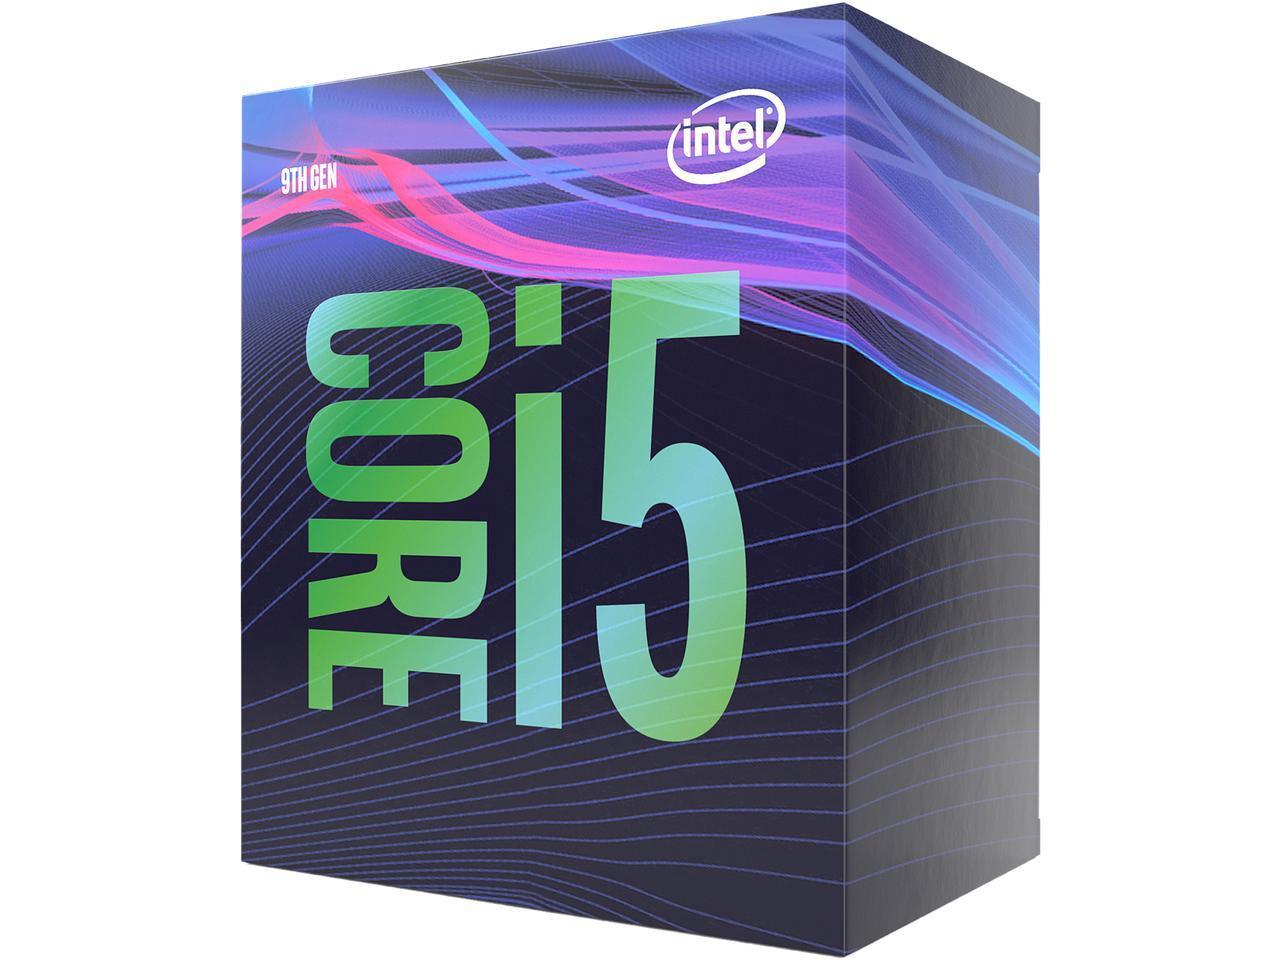 Процесор Intel Coffee Lake Core i5-9400 2.9GHz (up to 4.10GHz ), 9MB, 65W LGA1151 (300 Series)-2